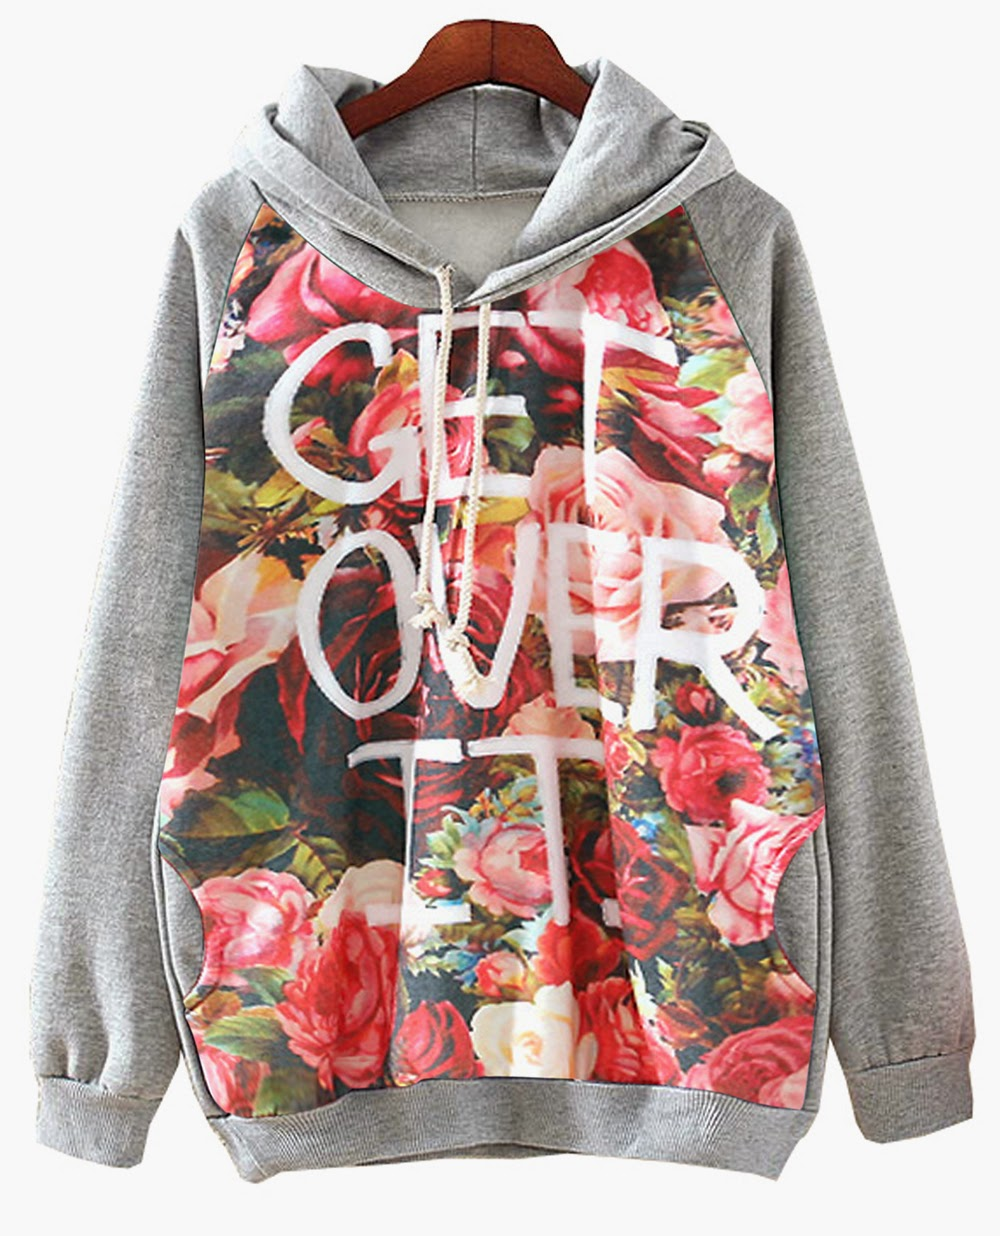 http://www.sheinside.com/Grey-Hooded-Floral-Letters-Print-Sweatshirt-p-180695-cat-1773.html?aff_id=1285